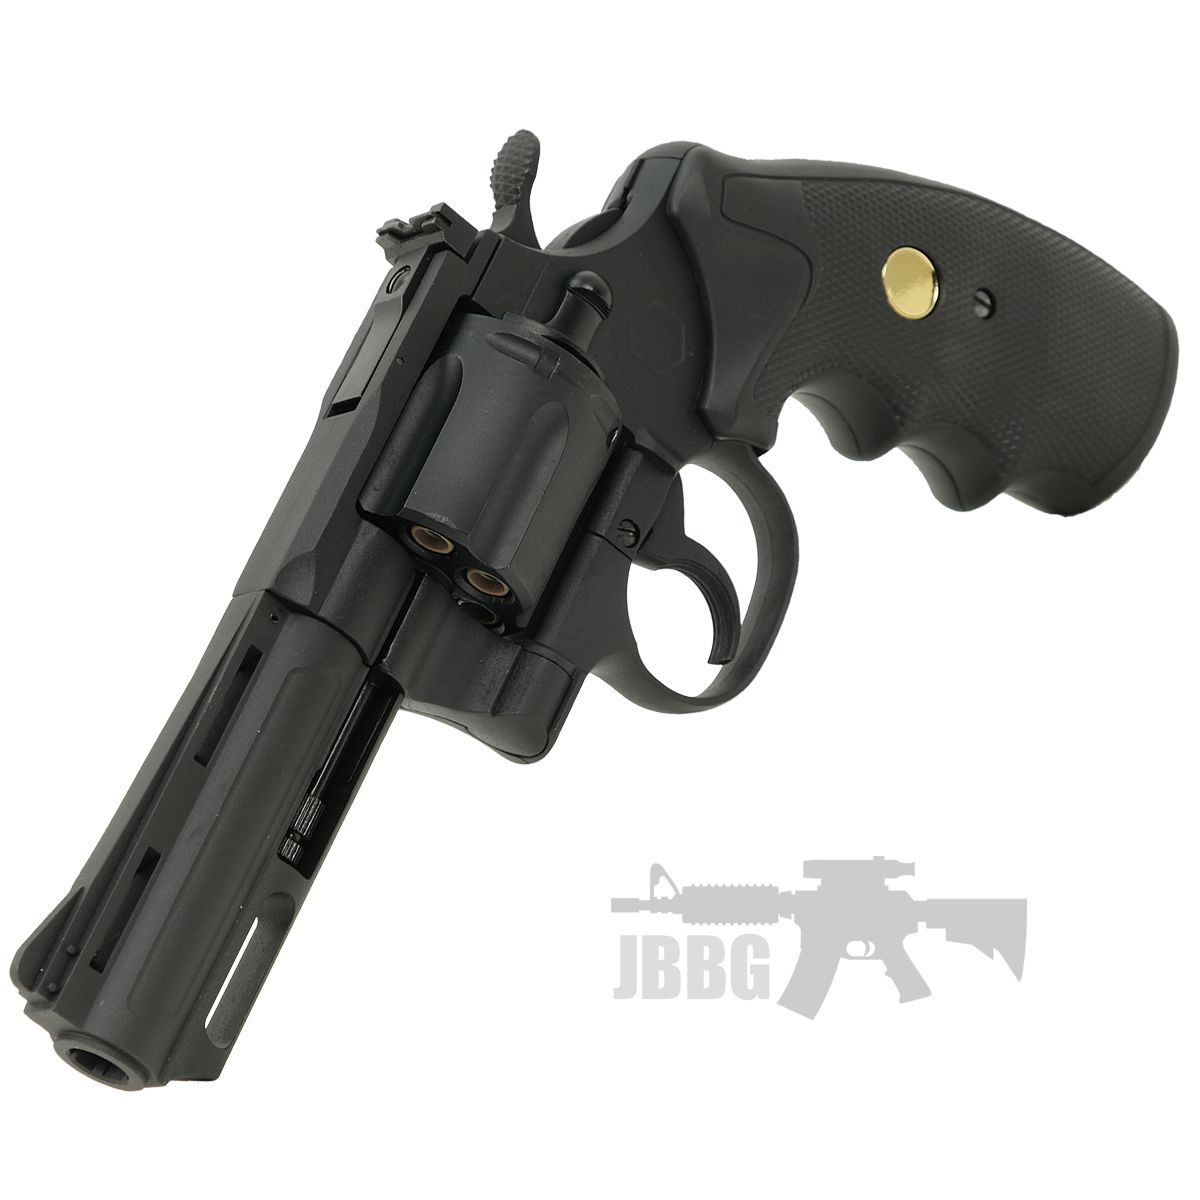 King Arms Co2 Airsoft Revolver 3